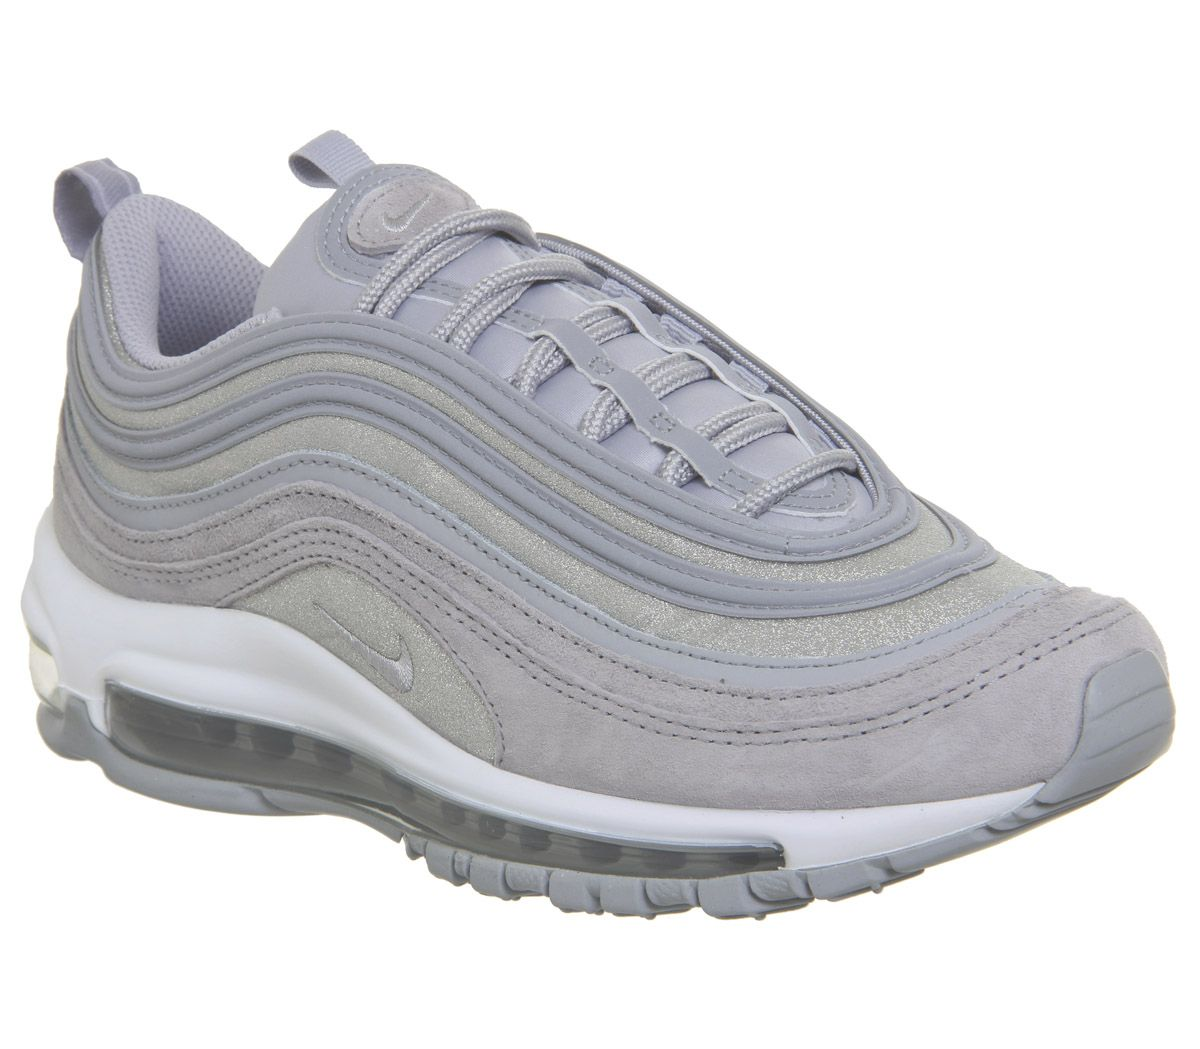 ef7993d732 Nike Air Max 97 Trainers Wolf Grey Pure Platinum White Glitter F ...